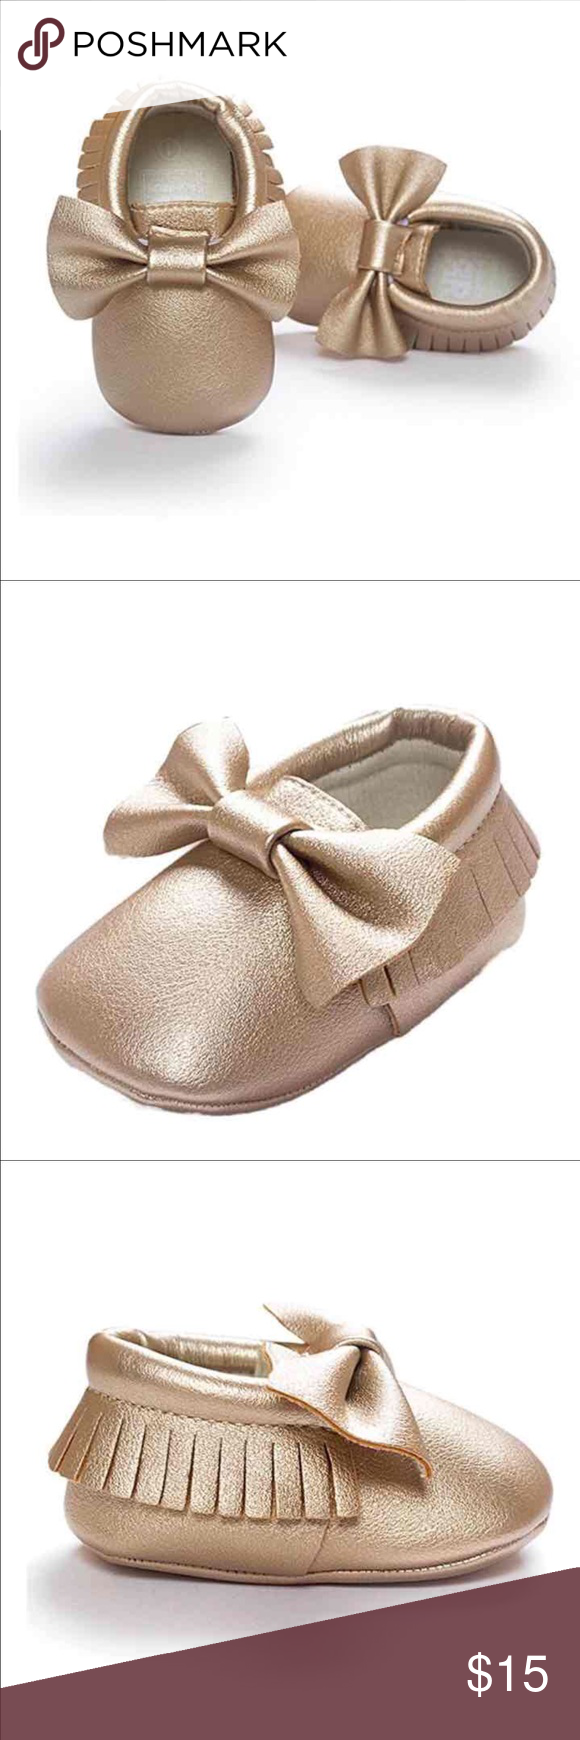 Baby moccasins gold fringe baby moccasins with bow nwt soft sole